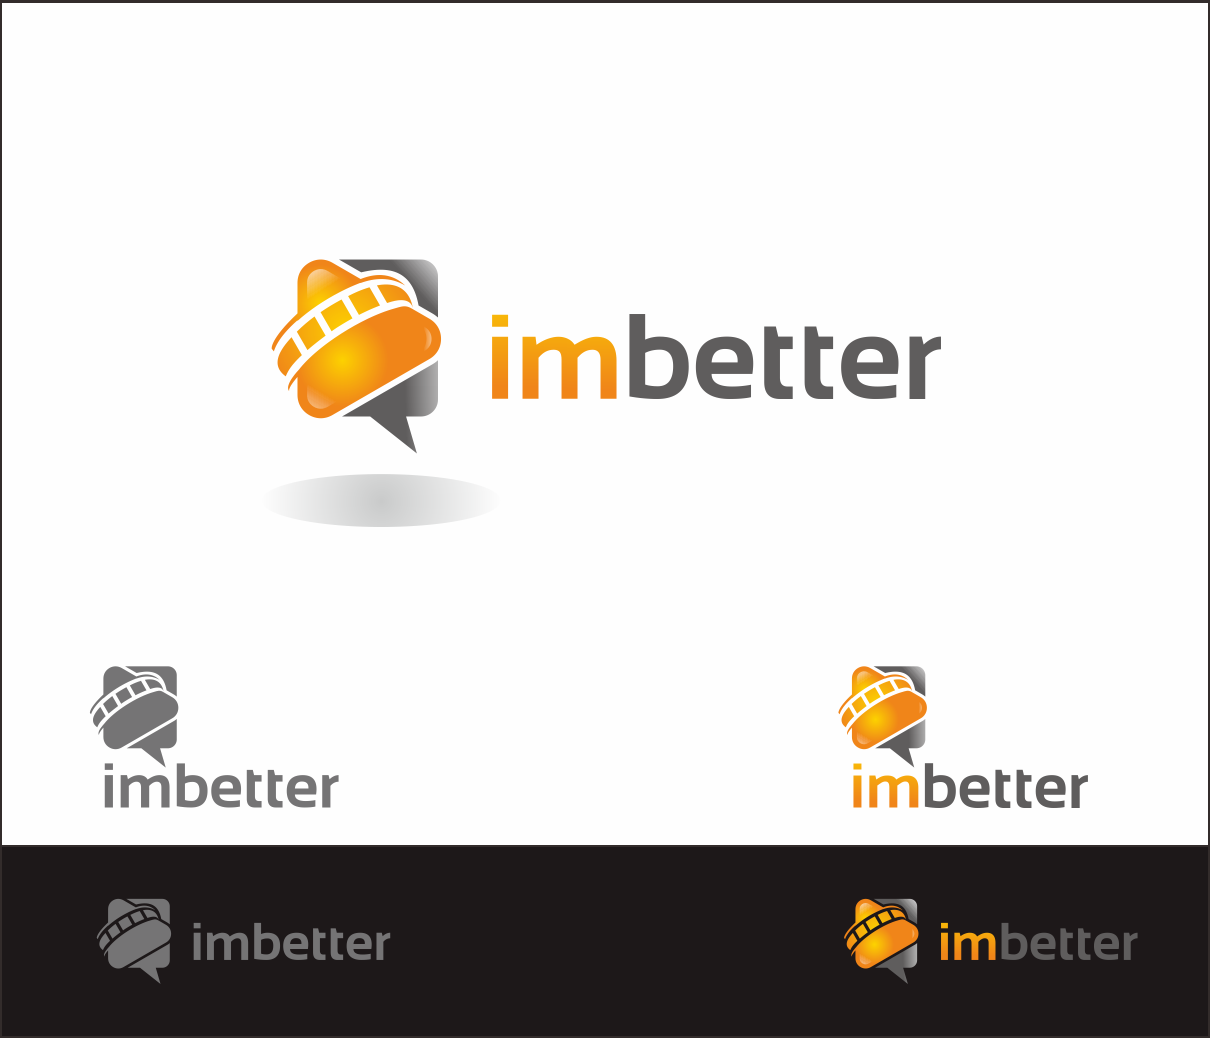 Logo Design by Armada Jamaluddin - Entry No. 149 in the Logo Design Contest Imaginative Logo Design for imbetter.